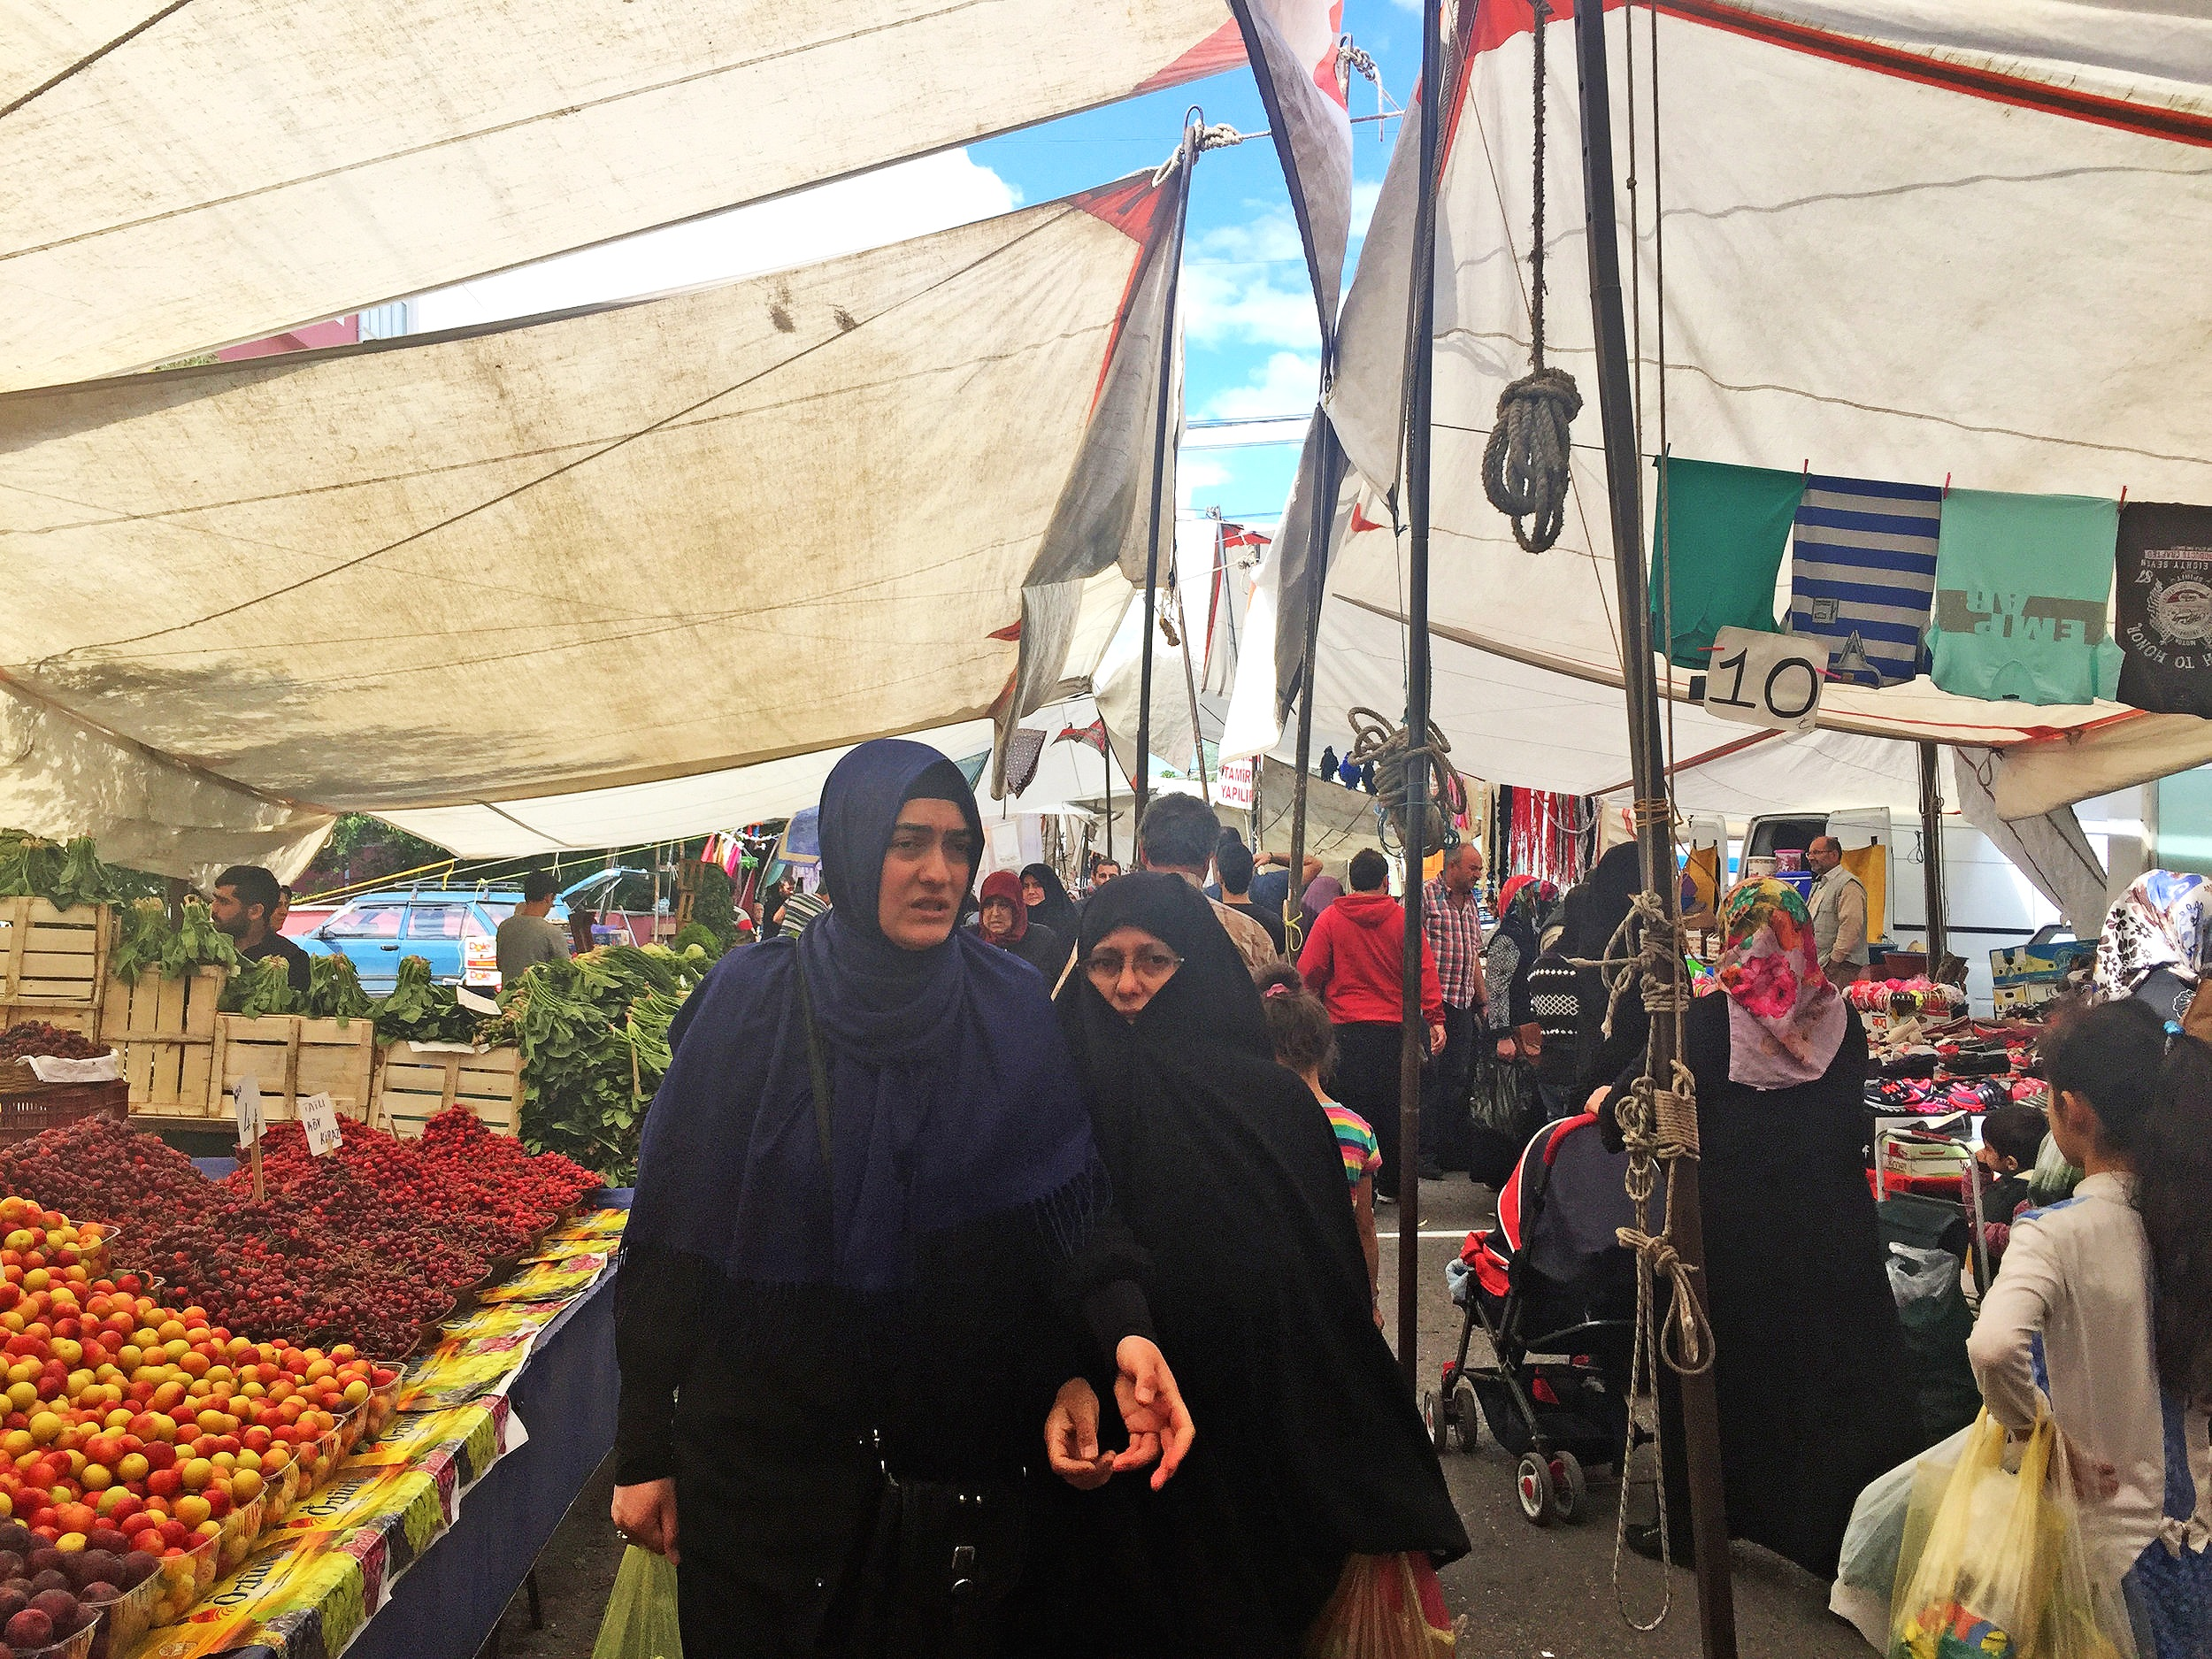 The marketplace in Sultanbeyli offers a place for social and economic integration of refugees, Turks, and other migrants in the neighborhood. Photo by author, 2017.